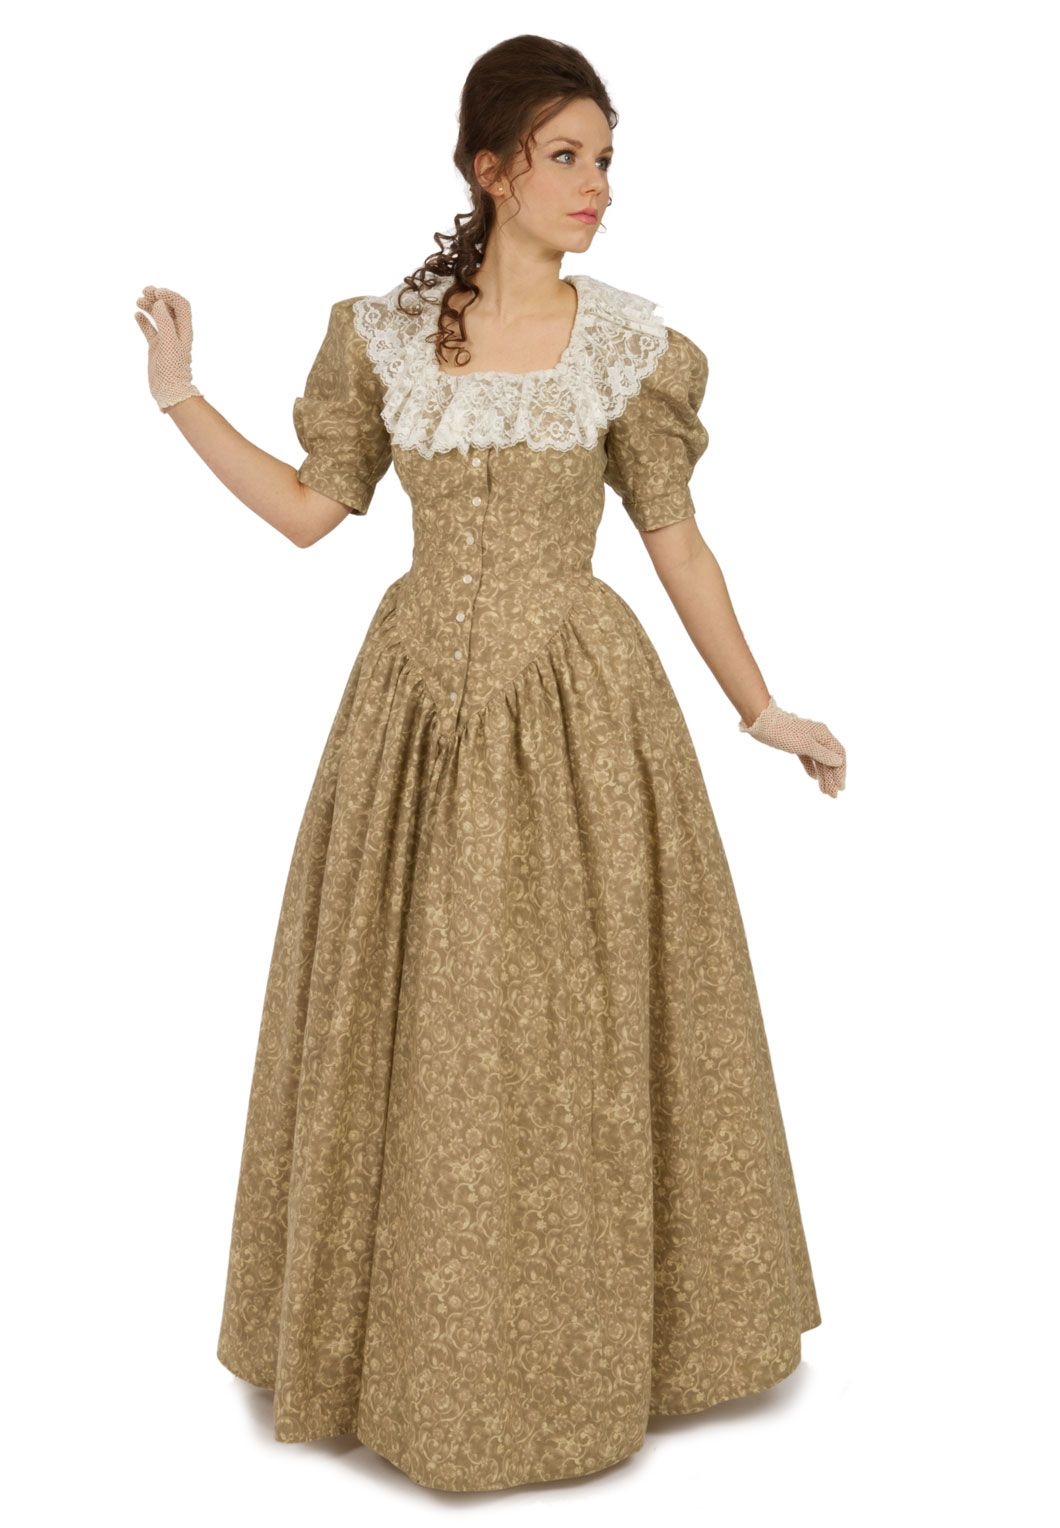 Camille Victorian Style Dress Victorian Fashion Dresses Victorian Fashion Dresses [ 1528 x 1060 Pixel ]